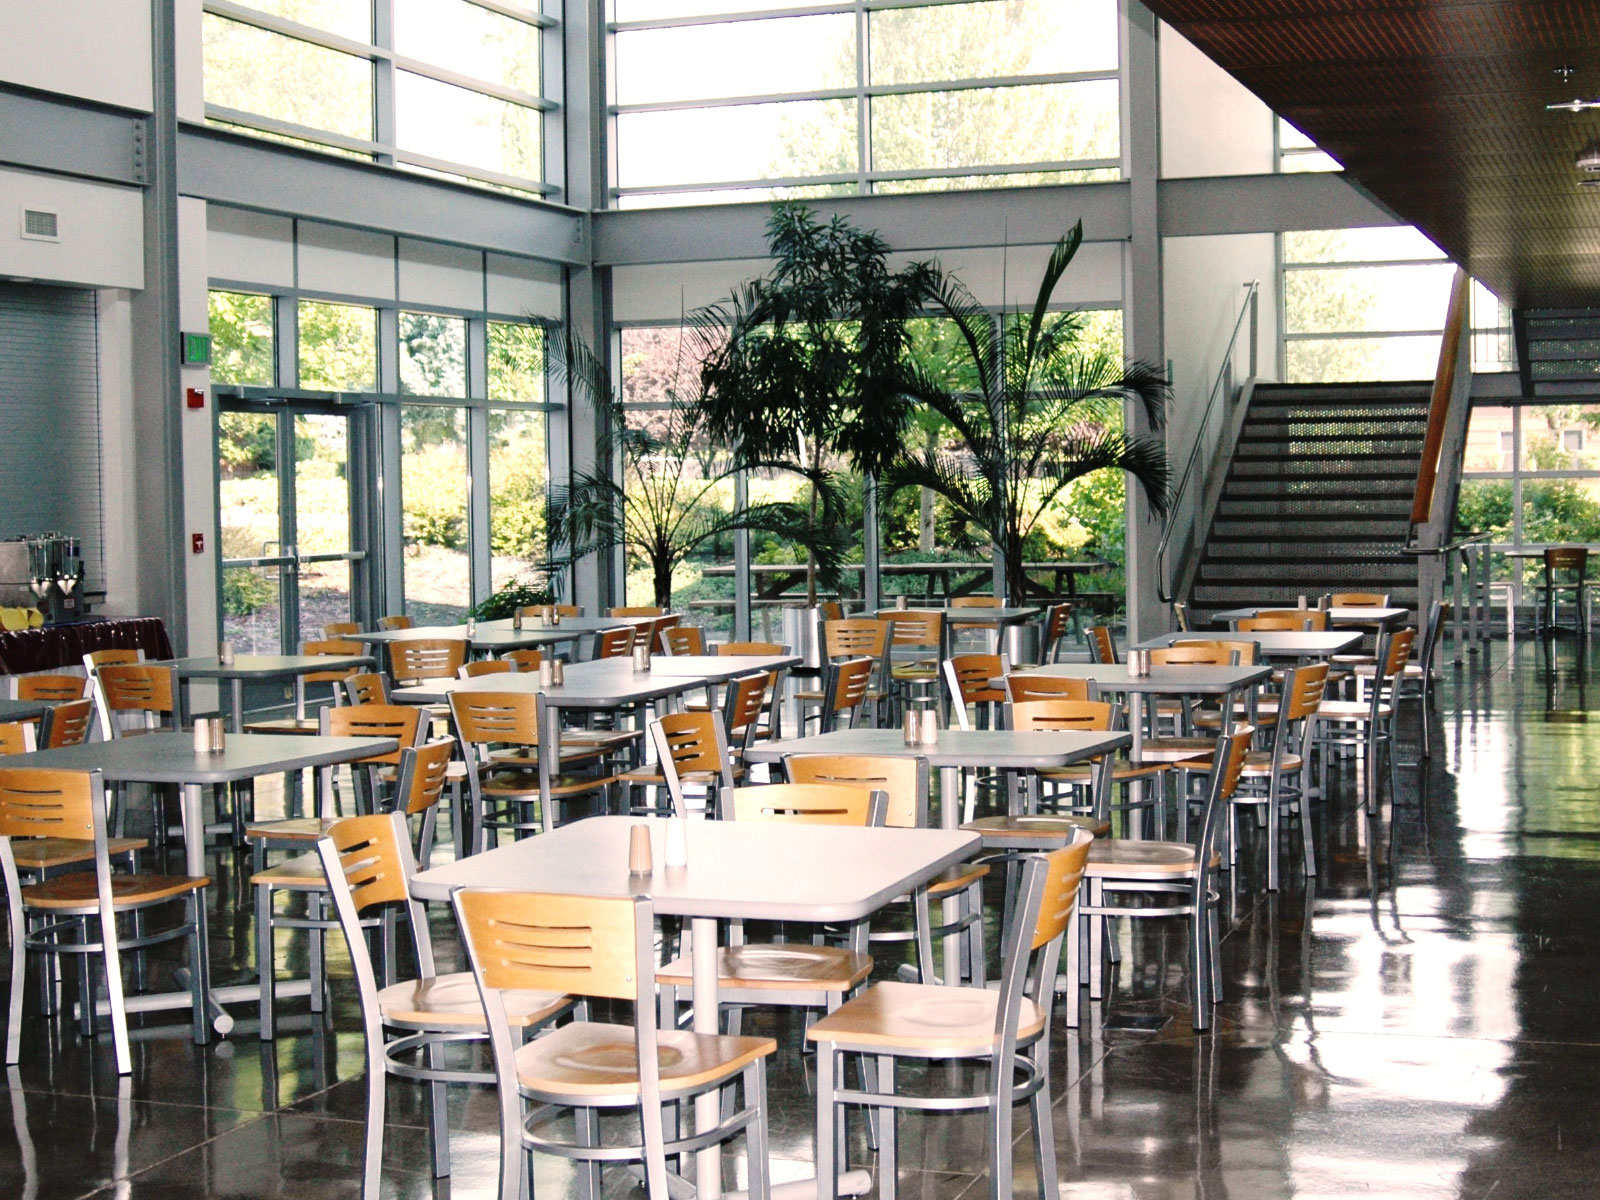 Rows of tables with chairs in the open commons area next to a set of stairs on the Wilsonville campus